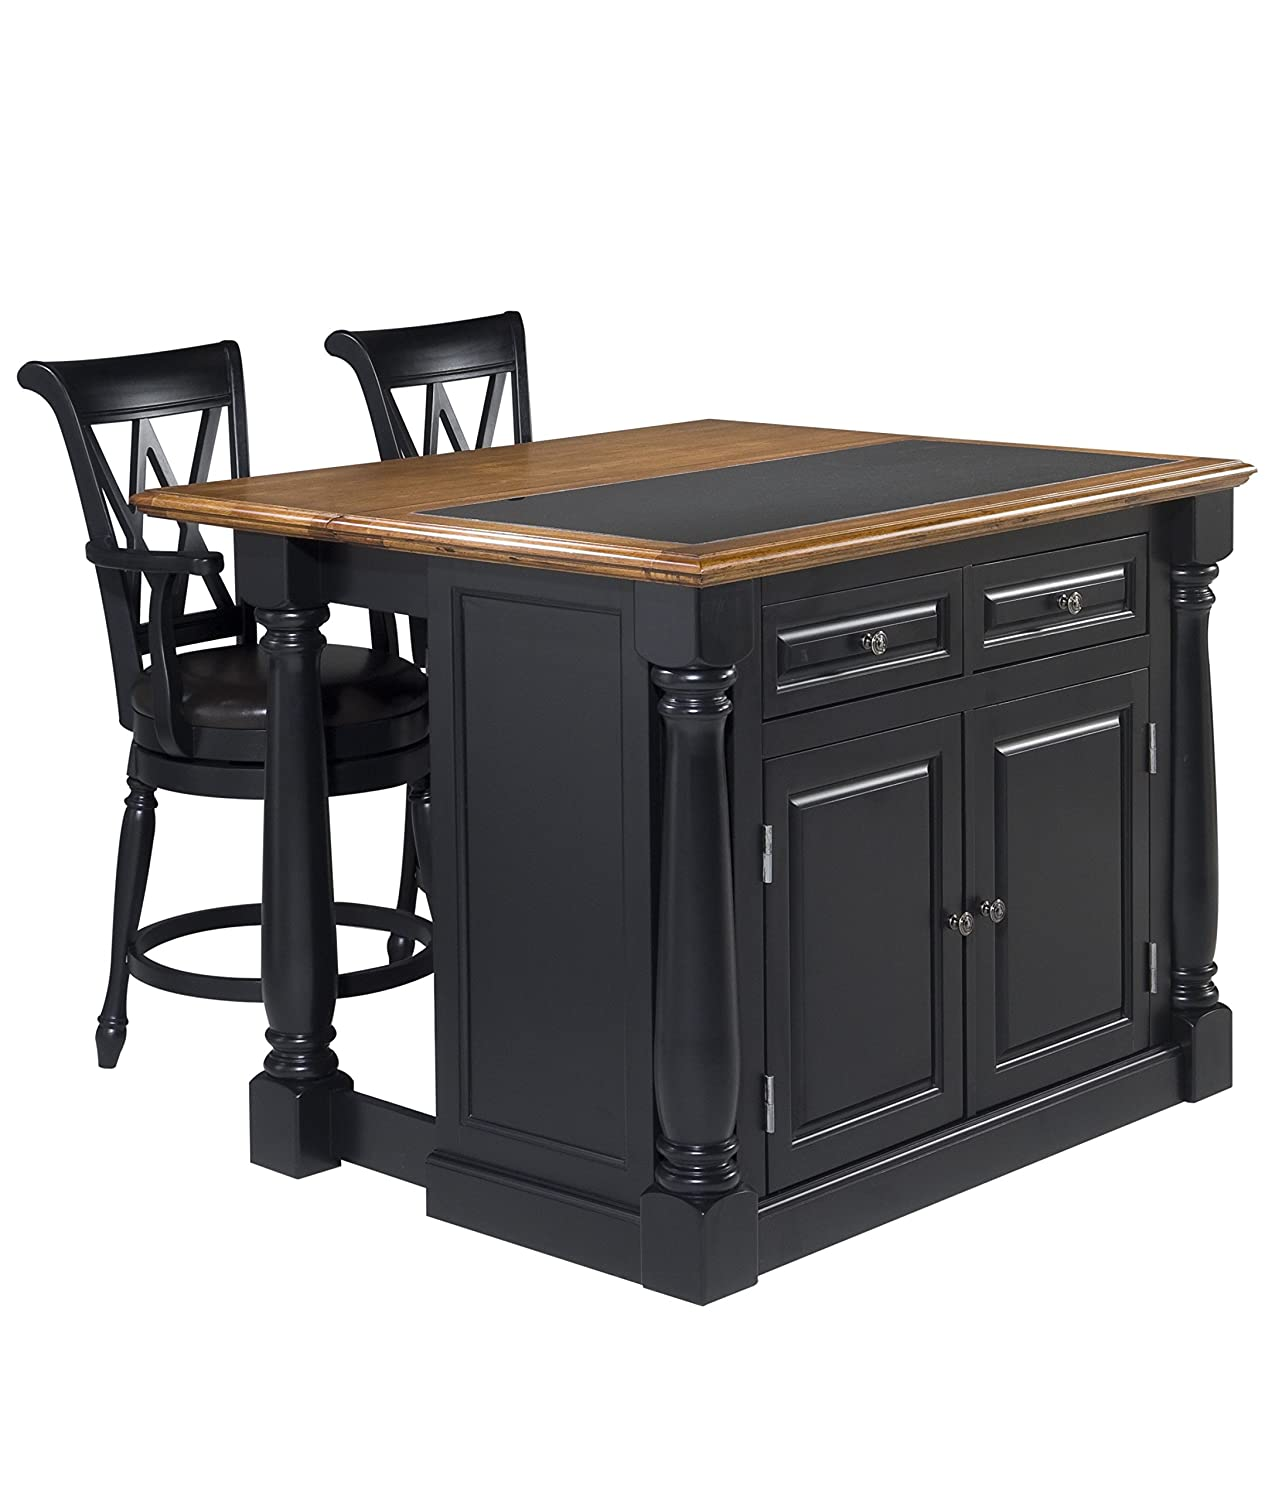 Kitchen island with granite insert - Amazon Com Home Styles 5009 948 Monarch Granite Top Kitchen Island With 2 Stool Black Finish Kitchen Islands Carts